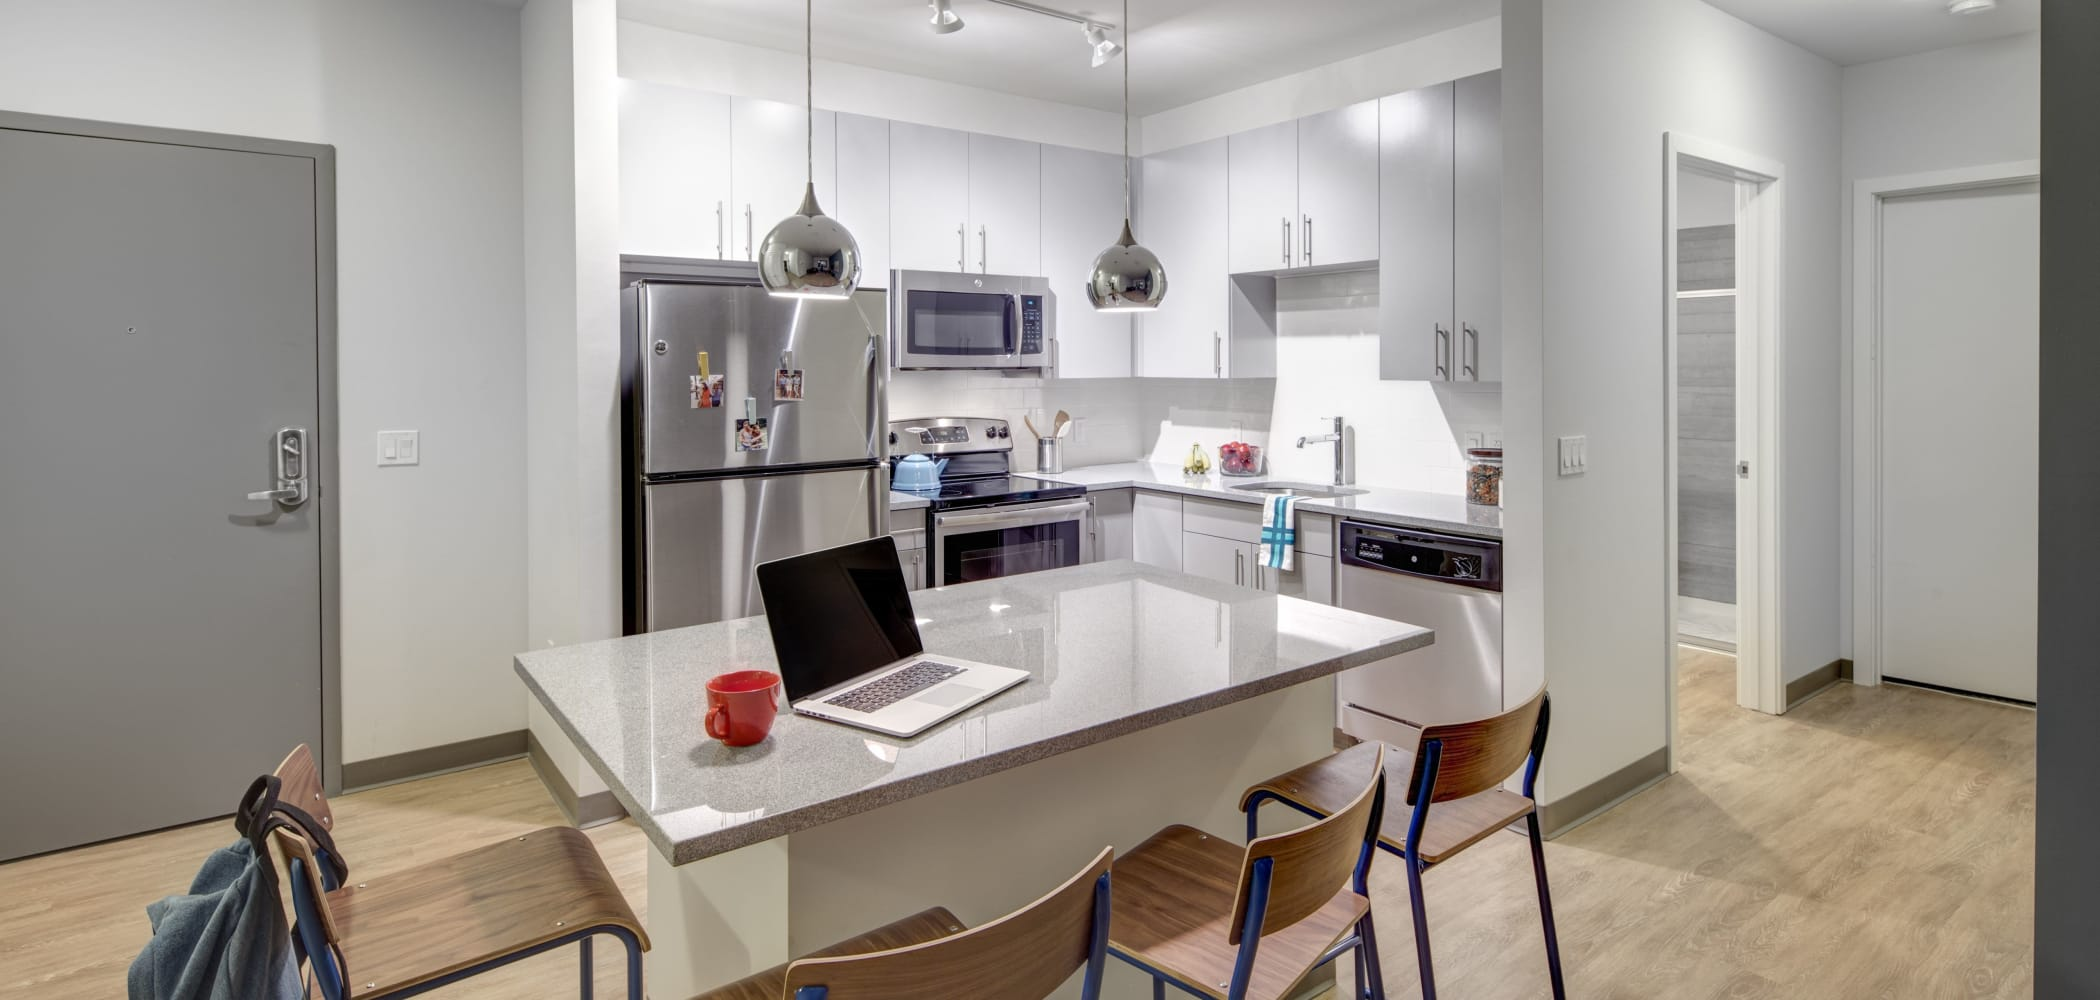 Kitchen with stainless steel appliances at West Quad in Champaign, Illinois